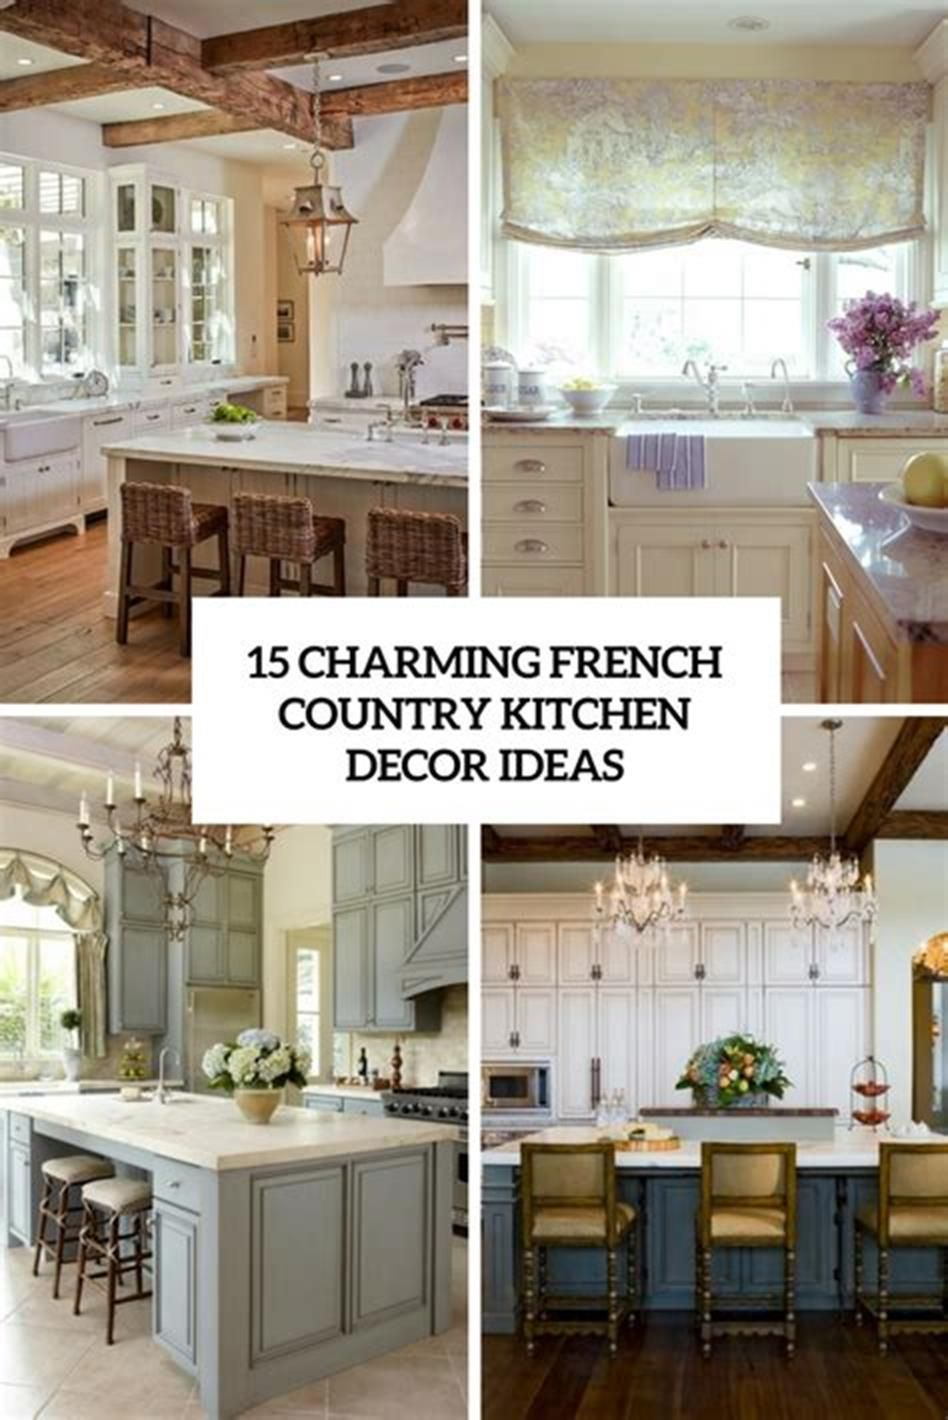 37 inspiring country kitchen decorating ideas small